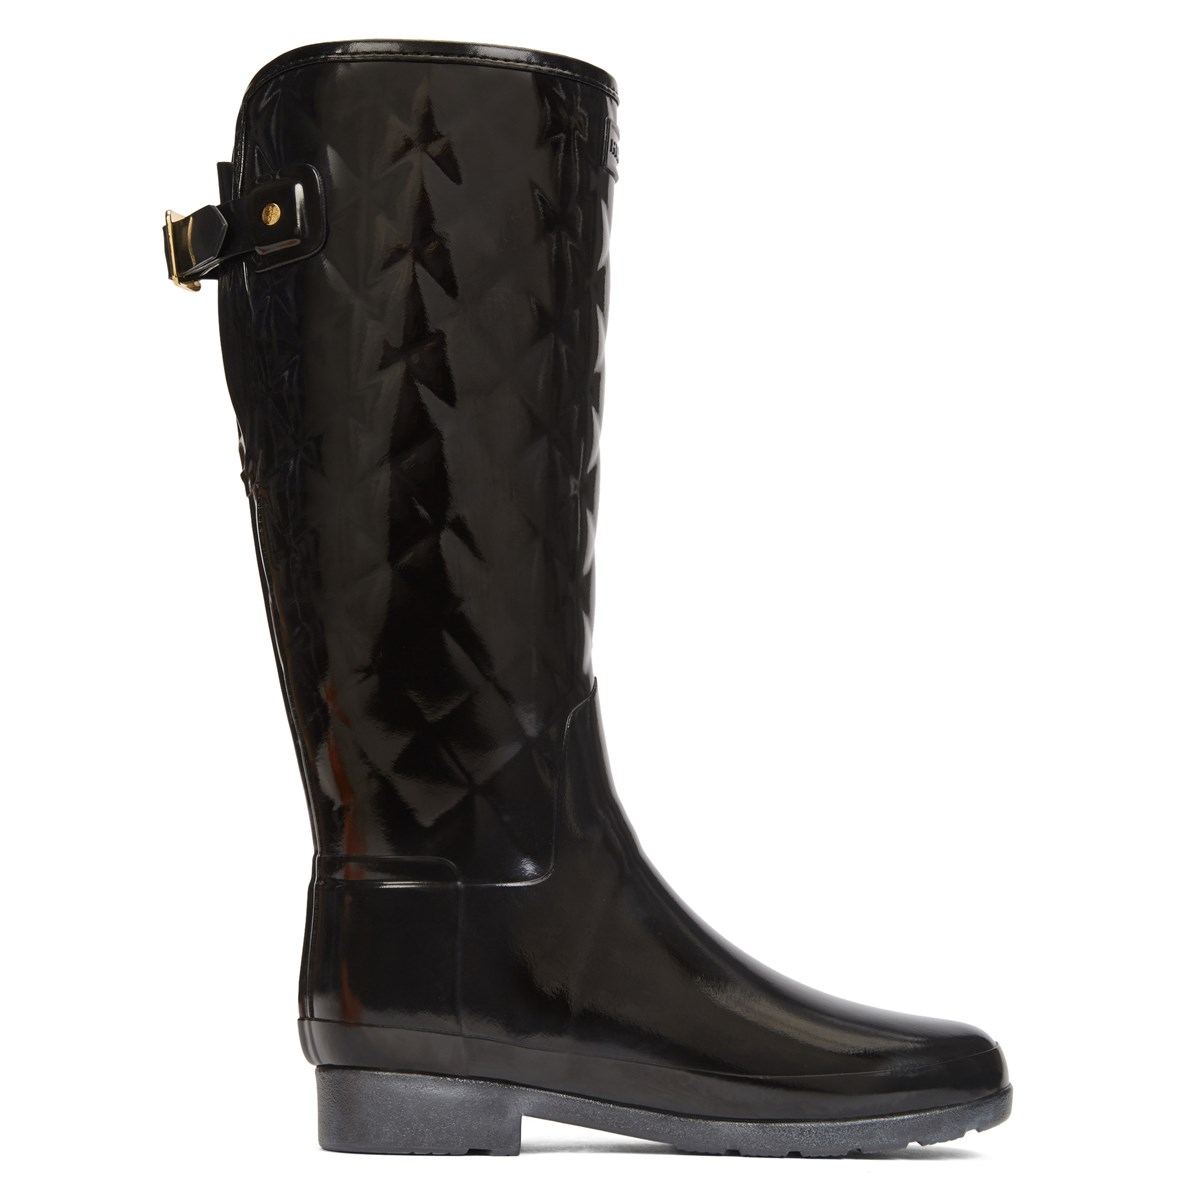 Women's Refined Gloss Quilt Tall Boots in Black